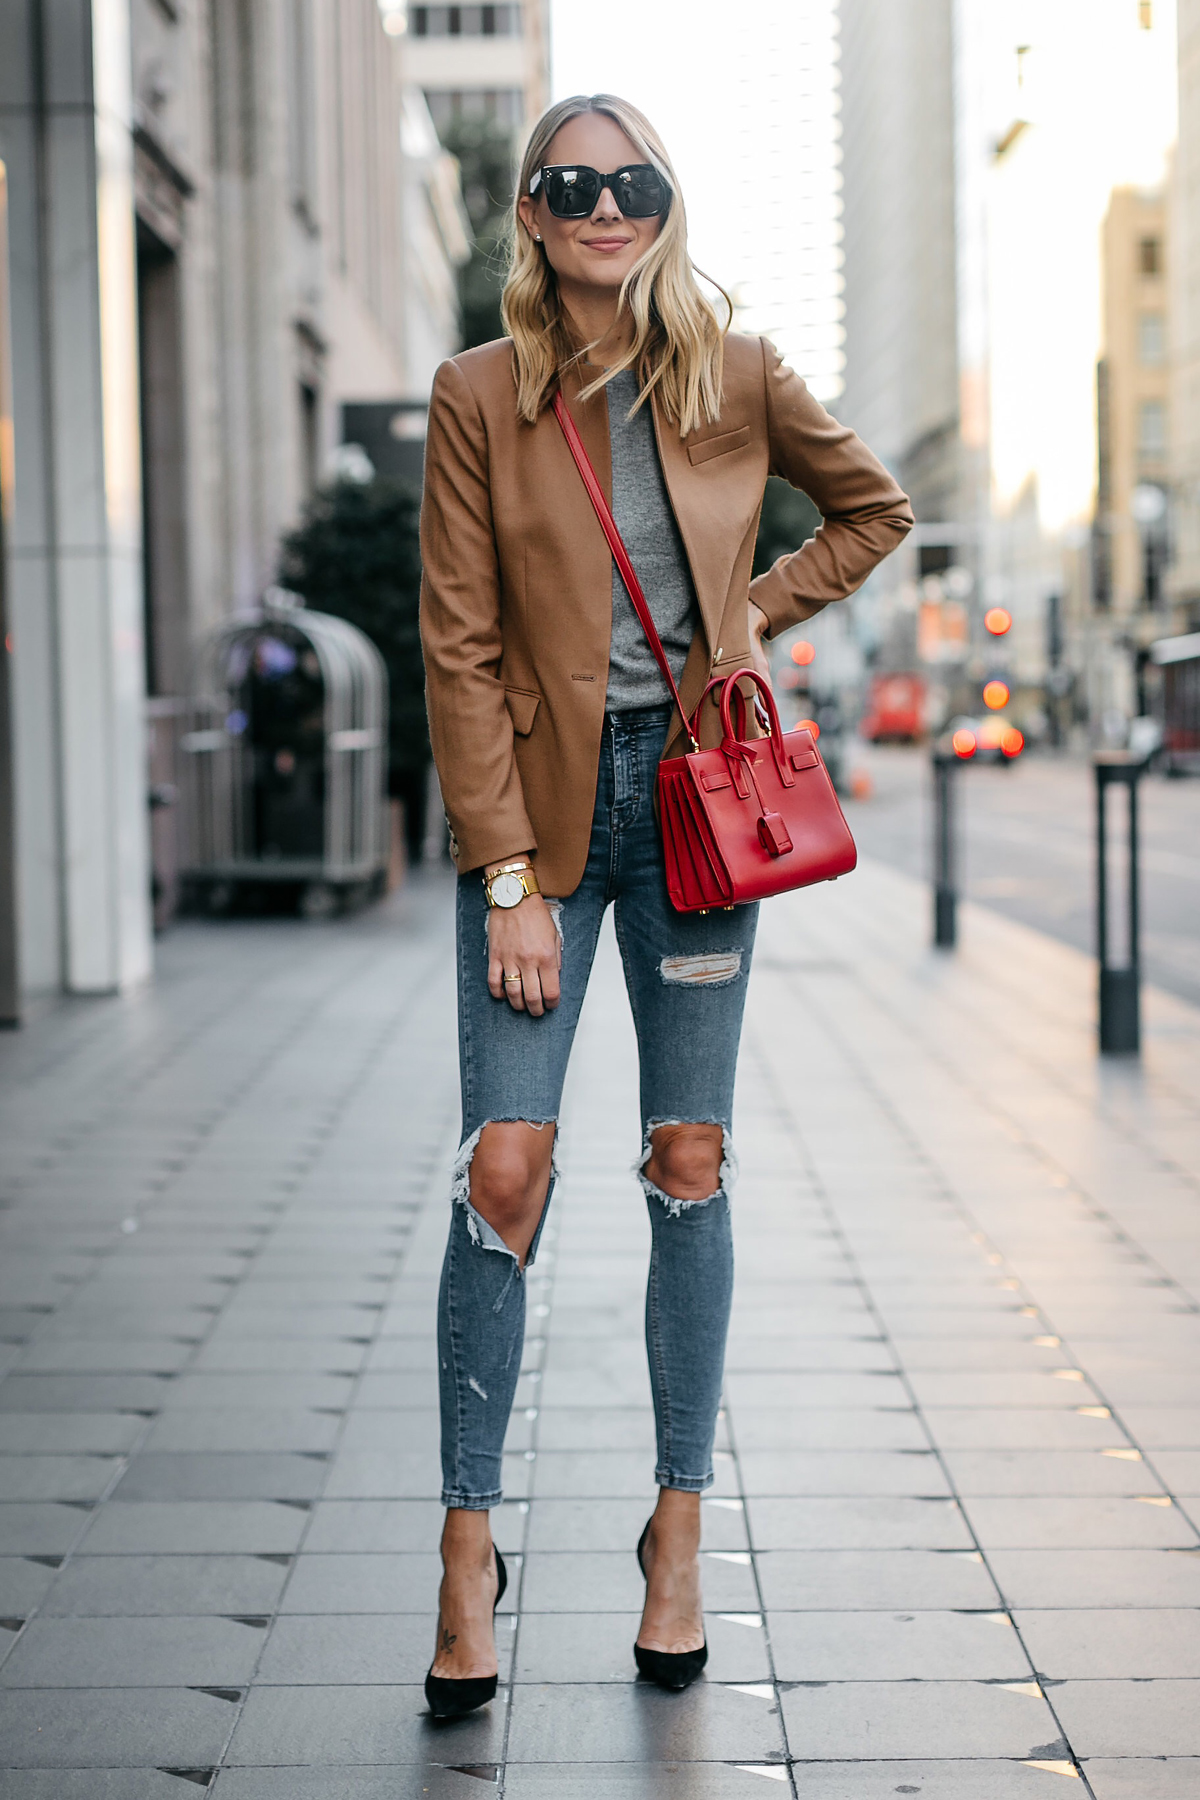 Blonde Woman Wearing Jcrew Camel Blazer Grey Sweater Ripped Denim Jeans Black Pumps Saint Laurent Sac De Jour Nano Red Bag Fashion Jackson Dallas Blogger Fashion Blogger Street Style